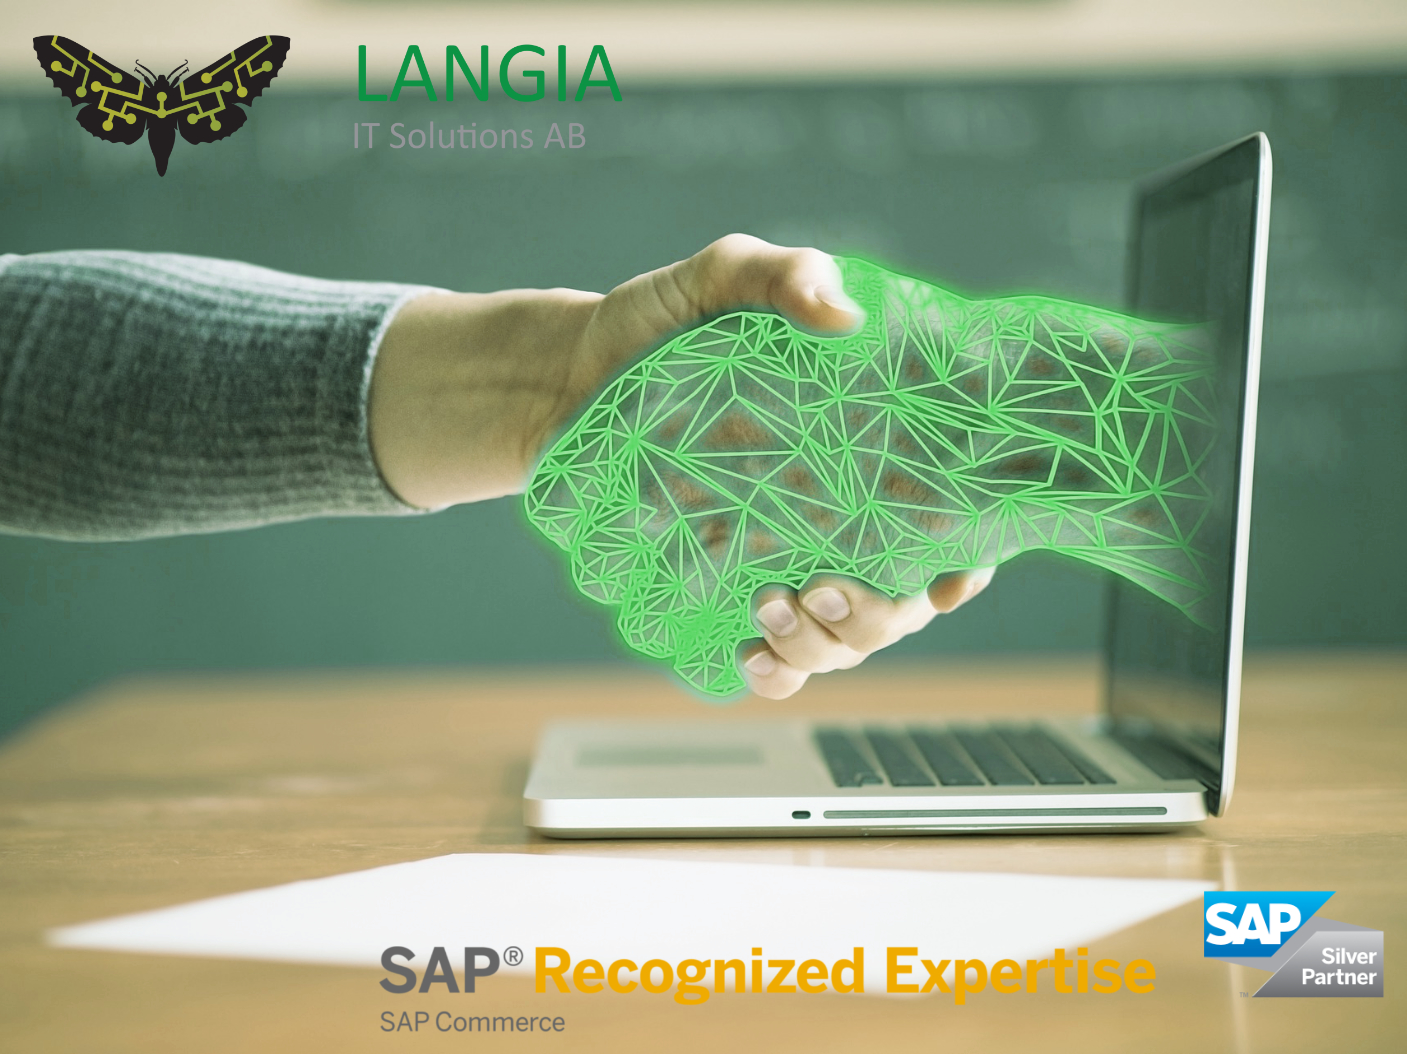 Integration made easy with SAP Cloud Integration